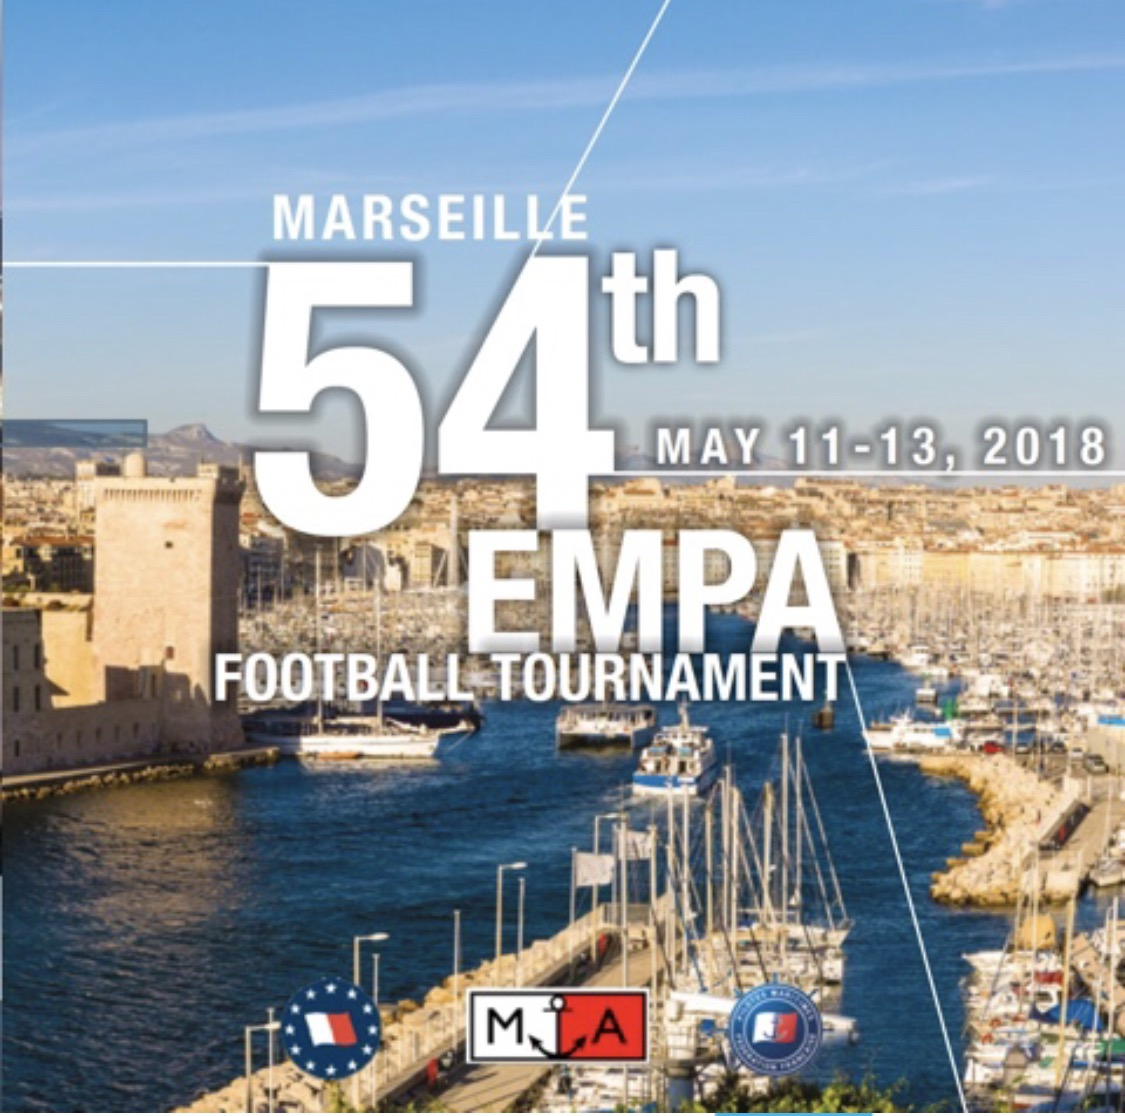 MARSIGLIA 54th EMPA FOOTBALL TOURNAMENT